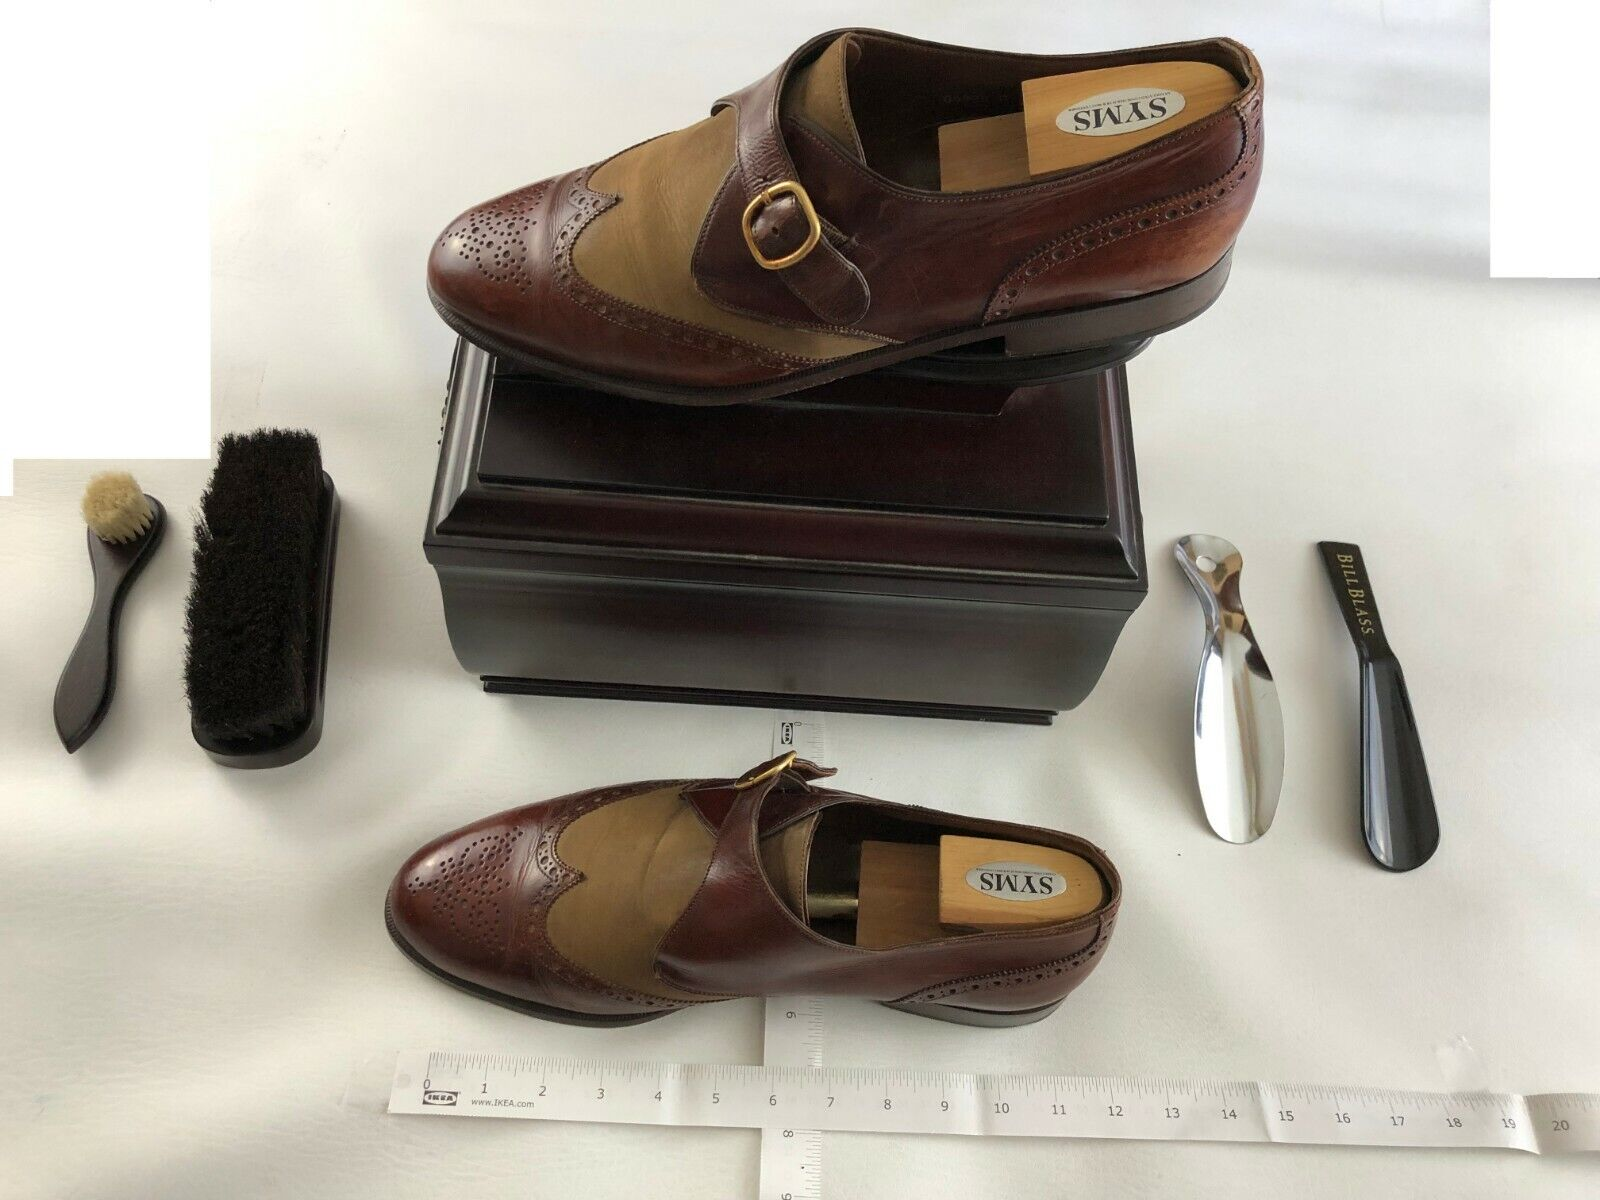 BRUNO MAGLI ITALY MEN'S DRESS SHOES Size 14 M Buckled Strap Brown & Sand